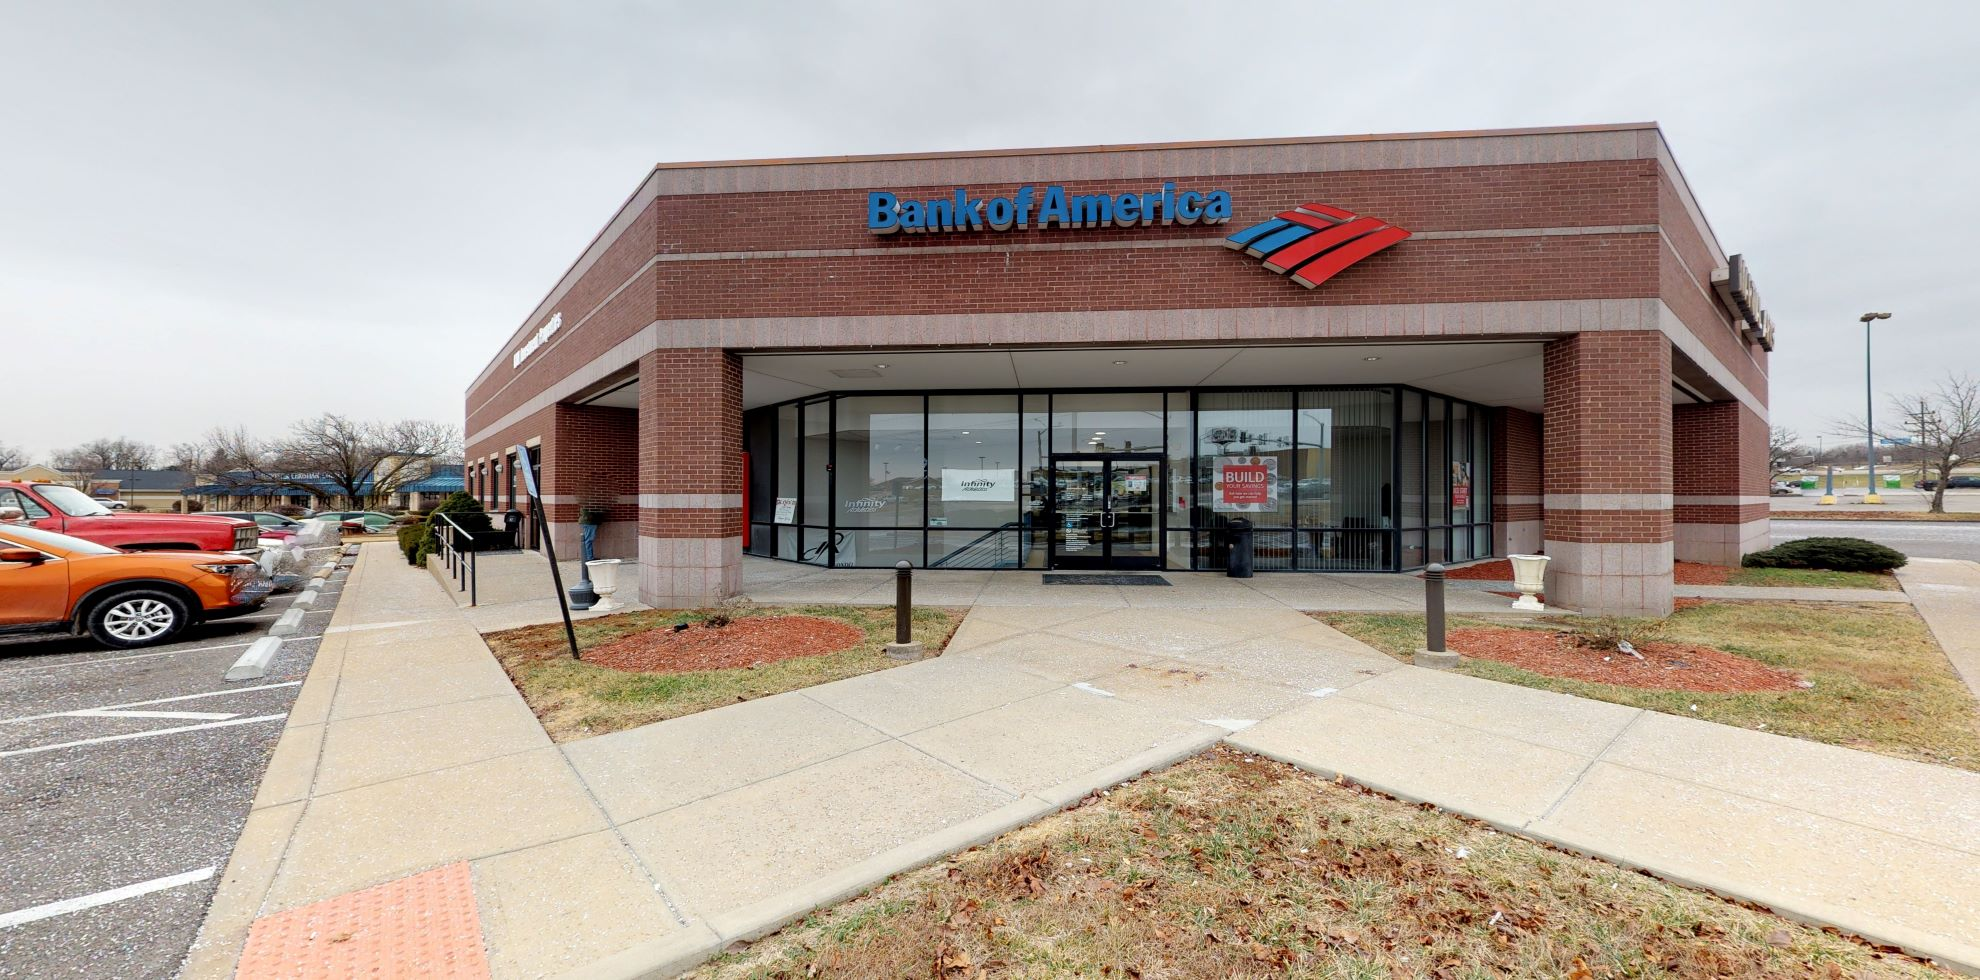 Bank of America financial center with drive-thru ATM and teller | 1 Front St, Troy, MO 63379